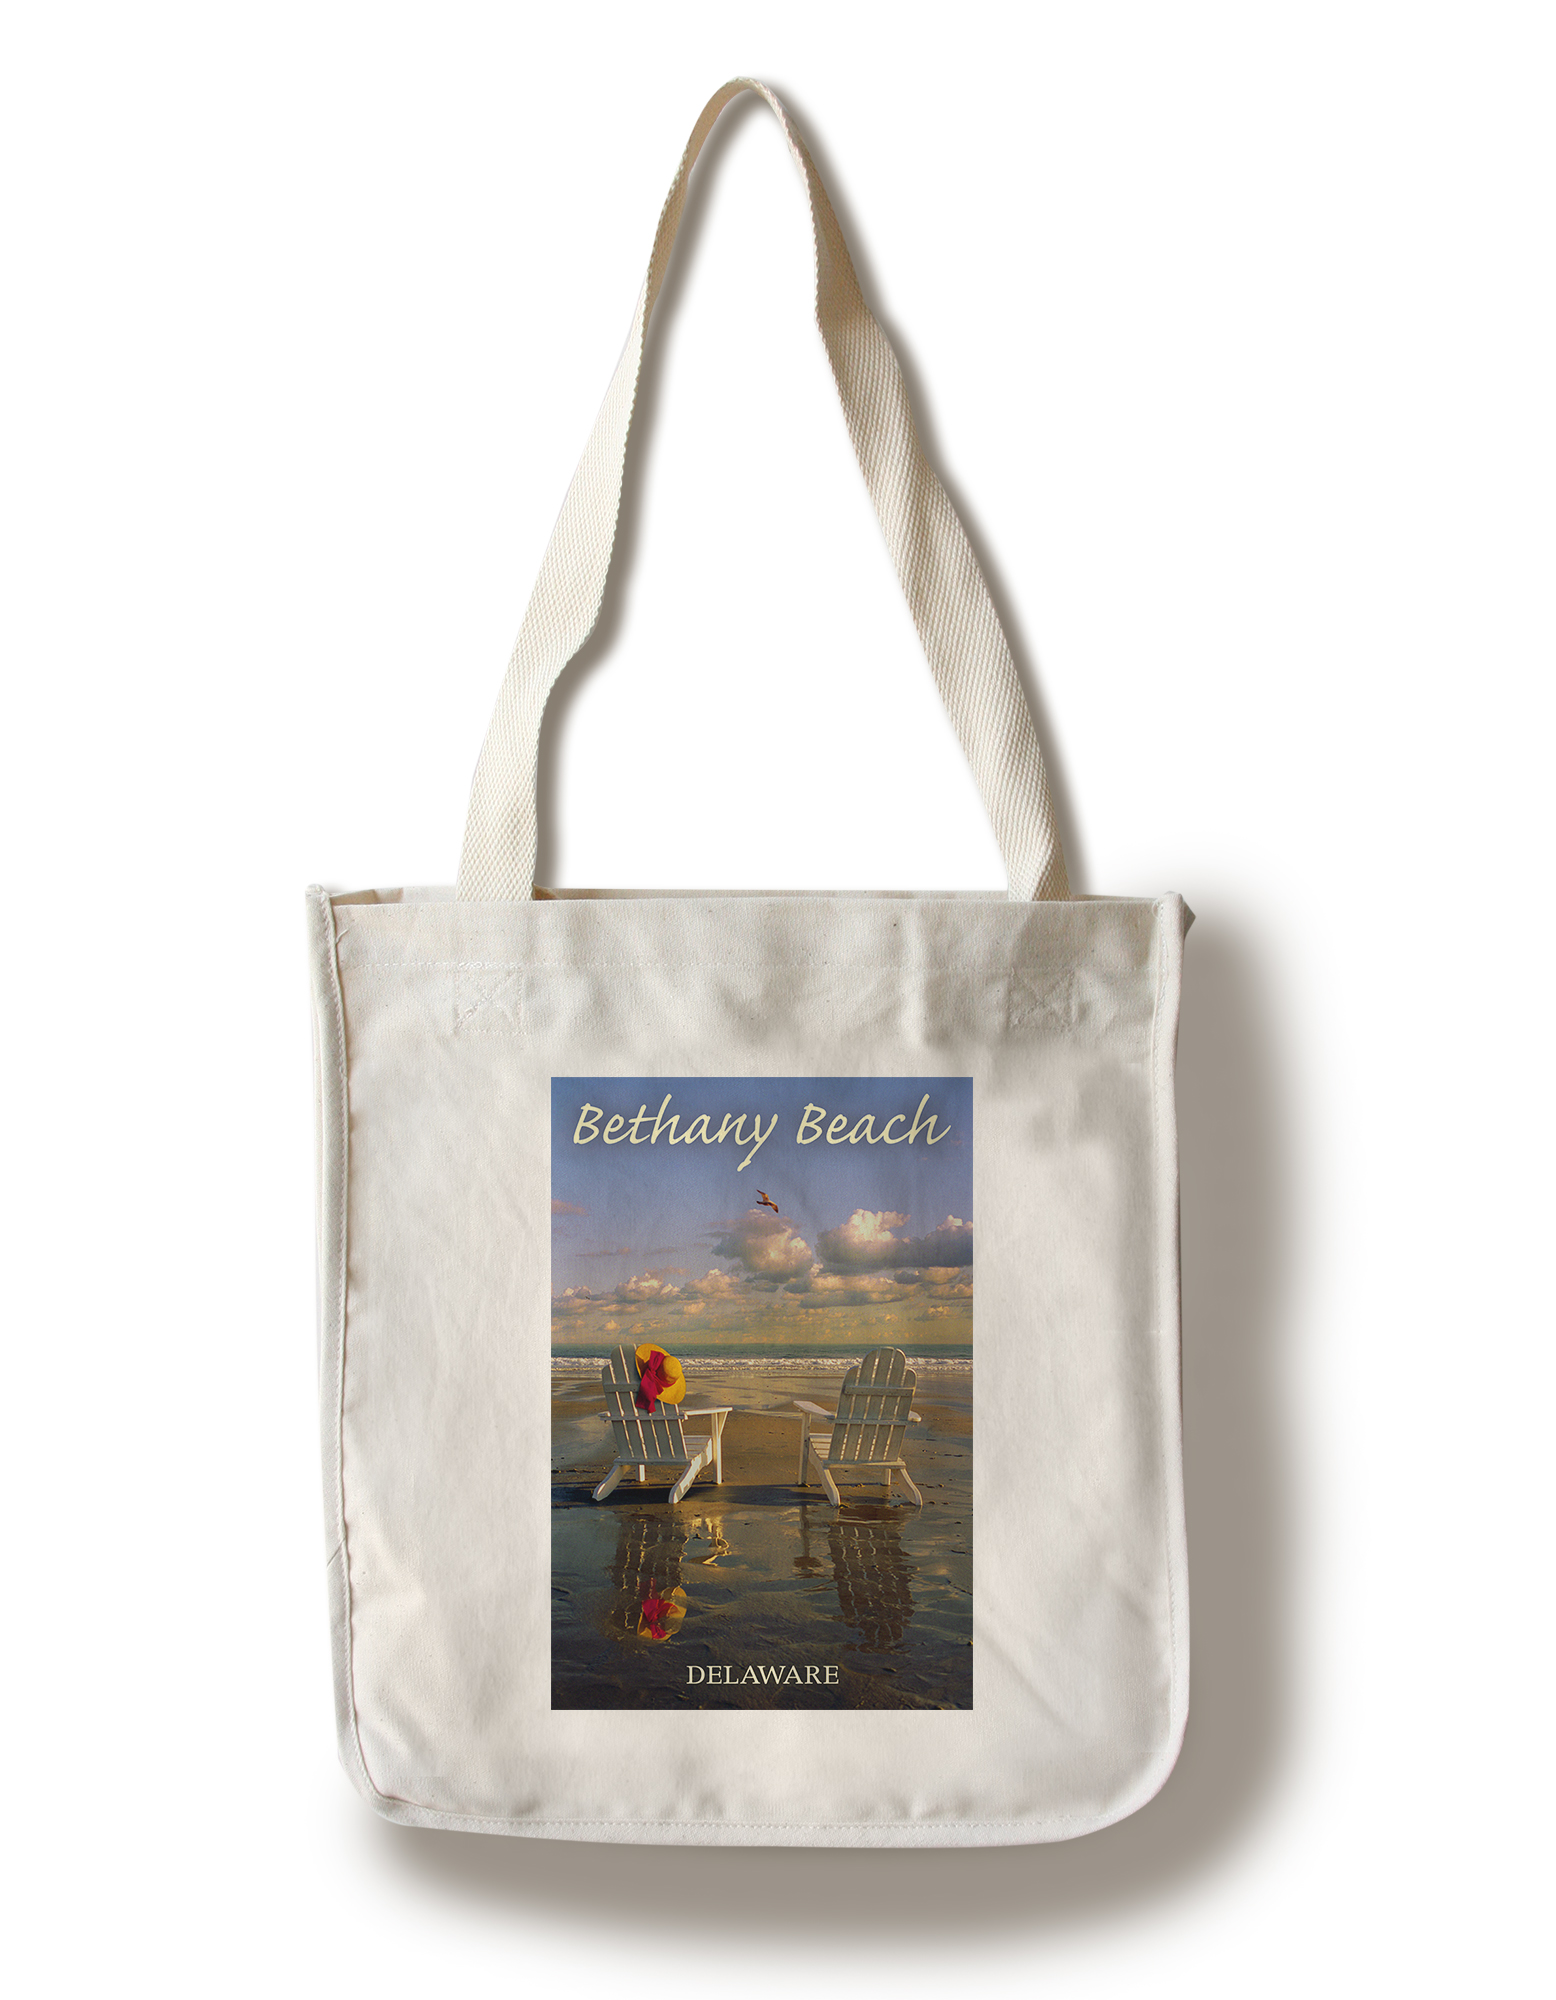 Bethany Beach, Delaware Adirondack Chairs on Beach Lantern Press Photography (100% Cotton Tote Bag Reusable) by Lantern Press